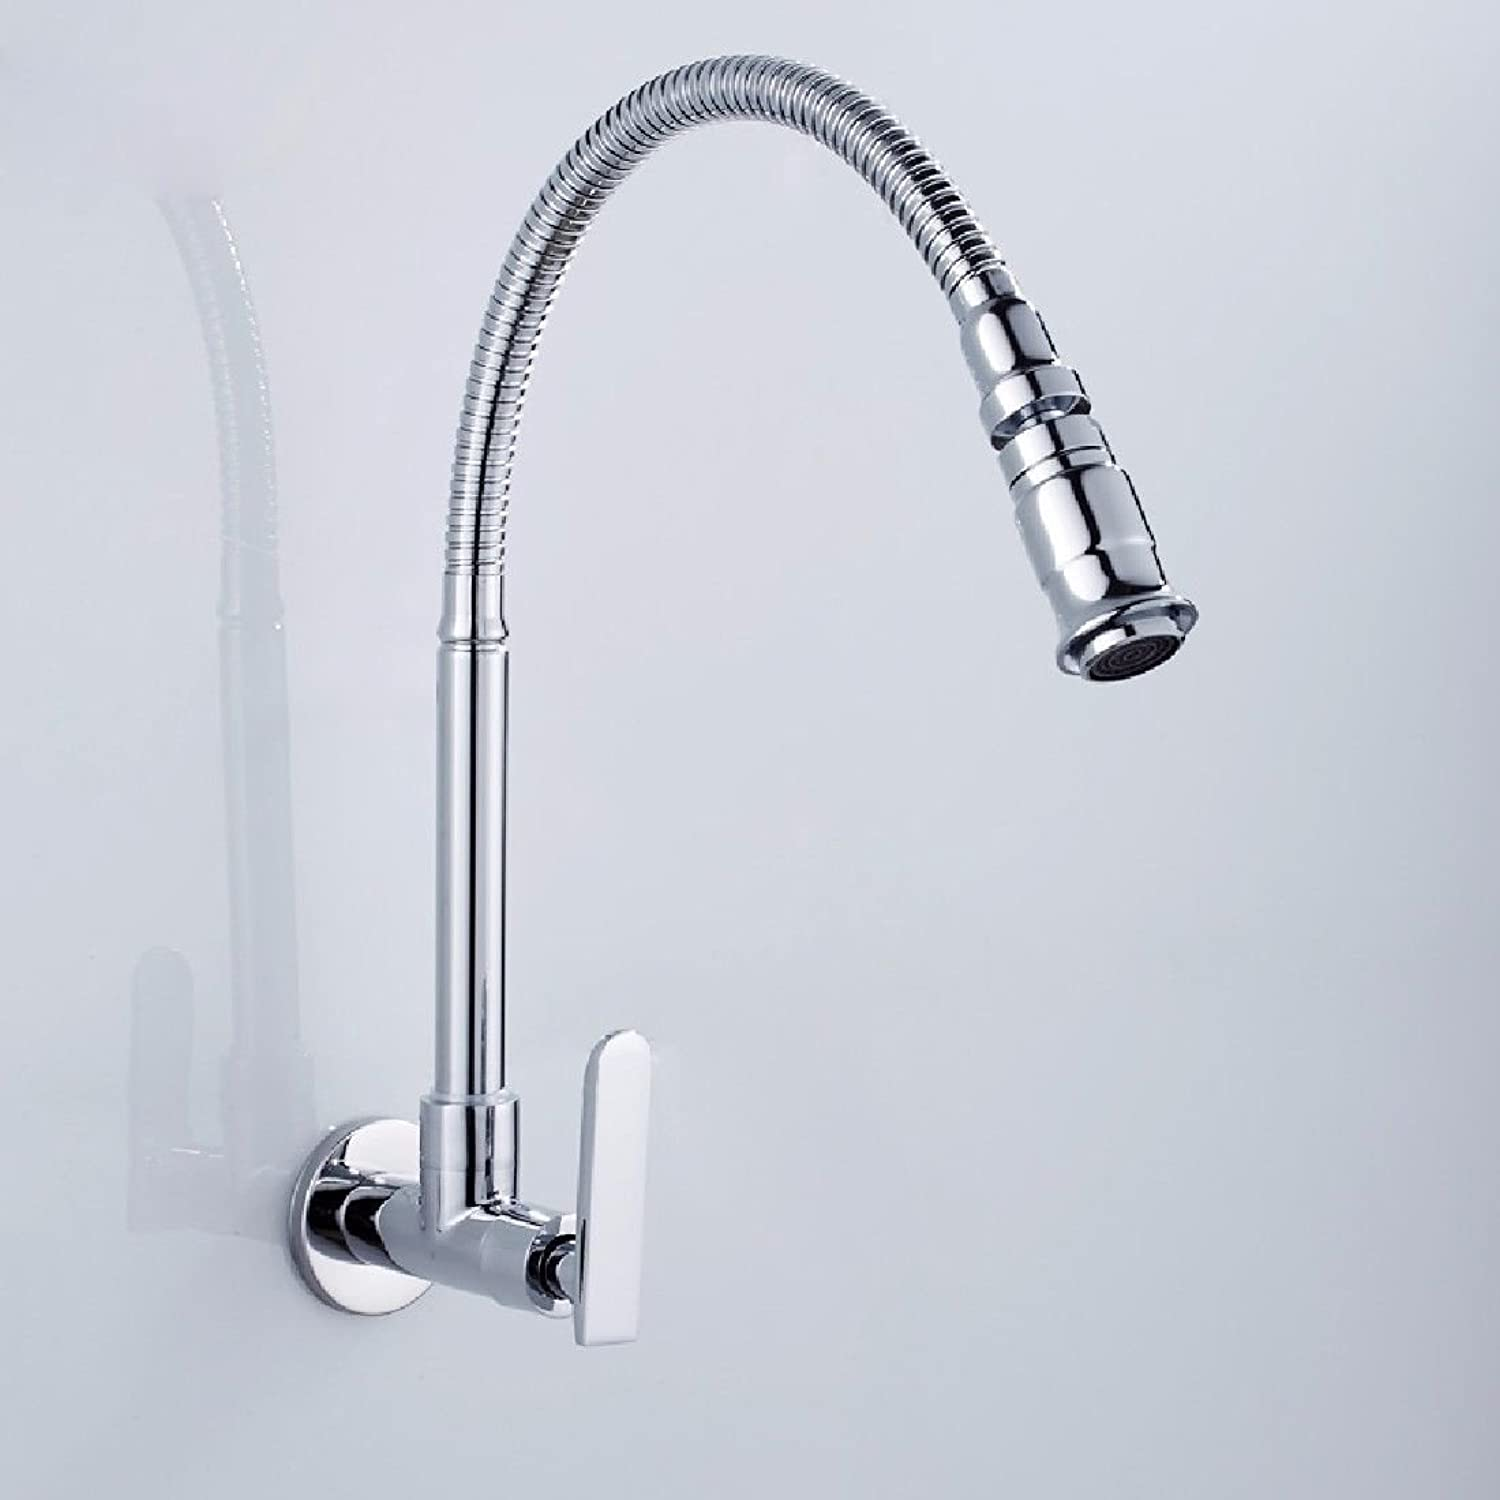 Lpophy Bathroom Sink Mixer Taps Faucet Bath Waterfall Cold and Hot Water Tap for Washroom Bathroom and Kitchen Single Cold All-Copper Universal Tube Into Wall